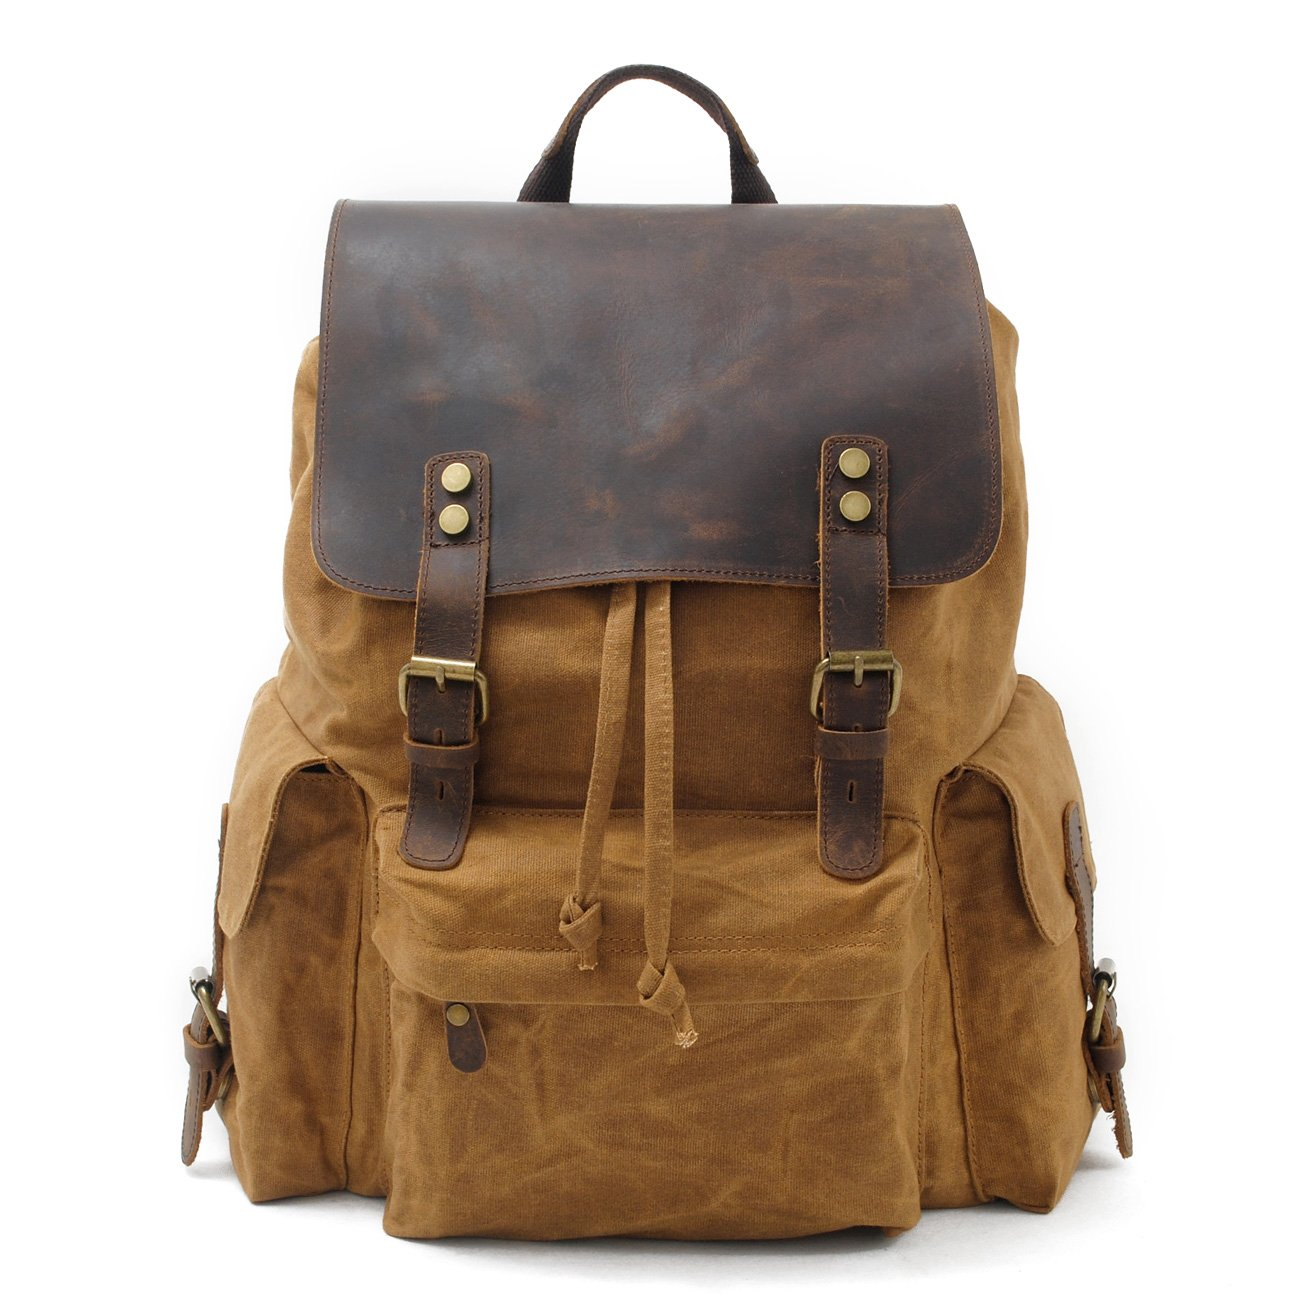 Unisex Vintage Canvas Genuine Cow Leather Travel Campus Book-bag School Bags fits 17 Inch Laptop Backpack Rucksack Daypack (Khaki)